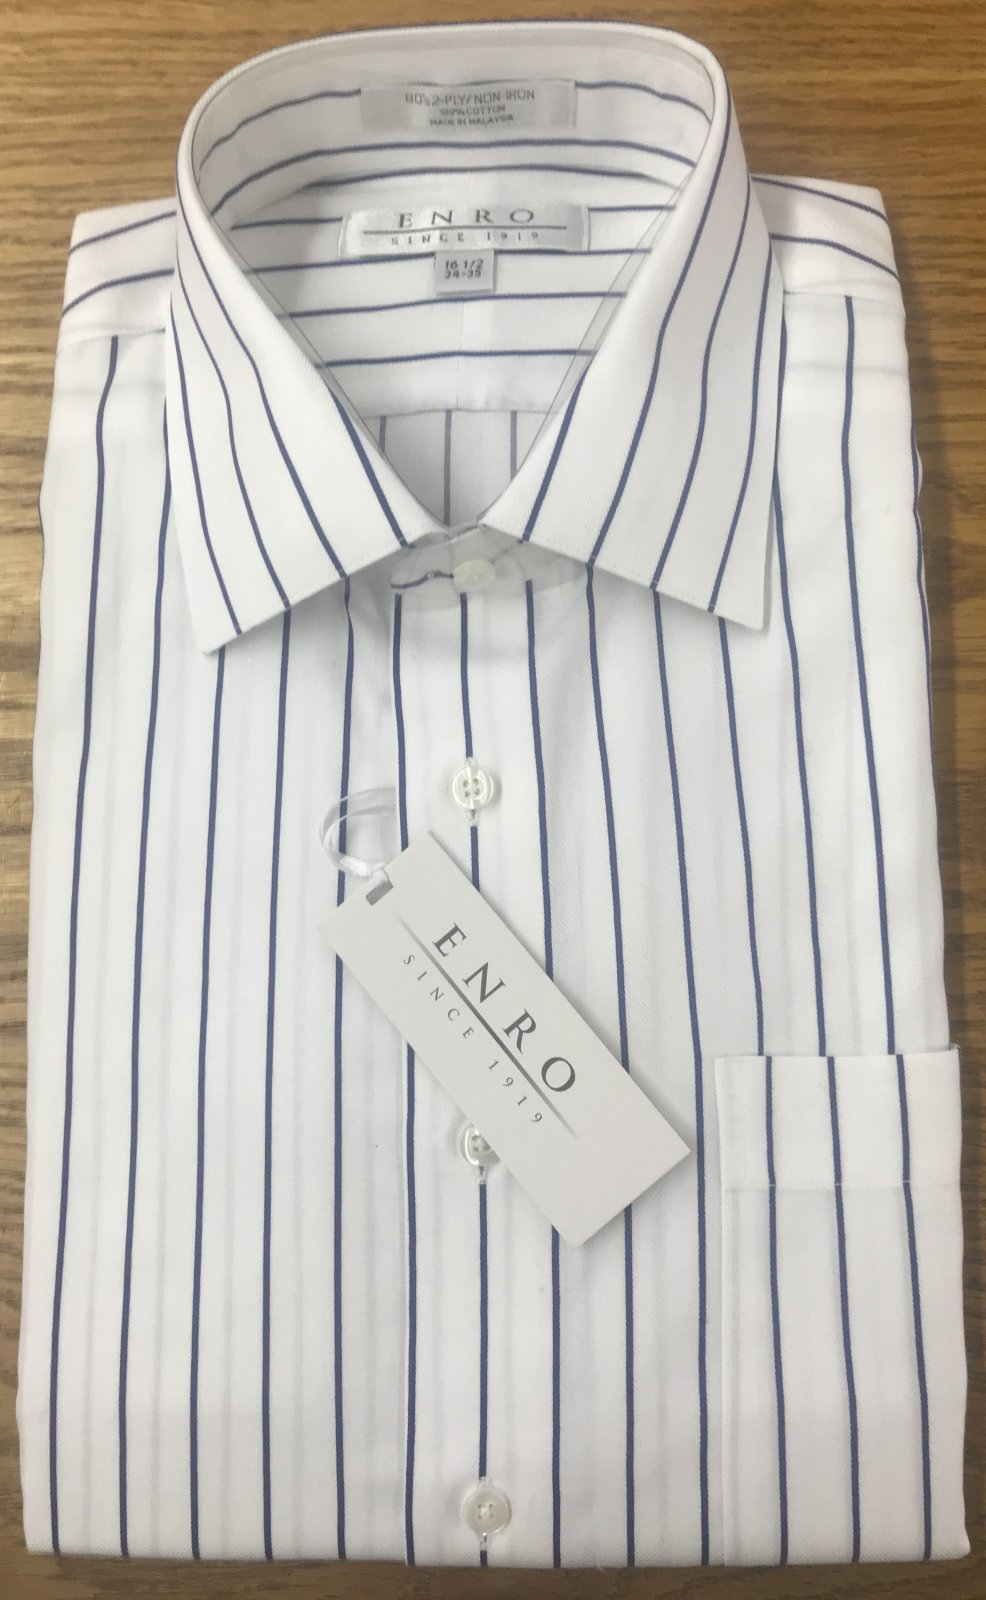 Enro LS Dress Shirt 150202